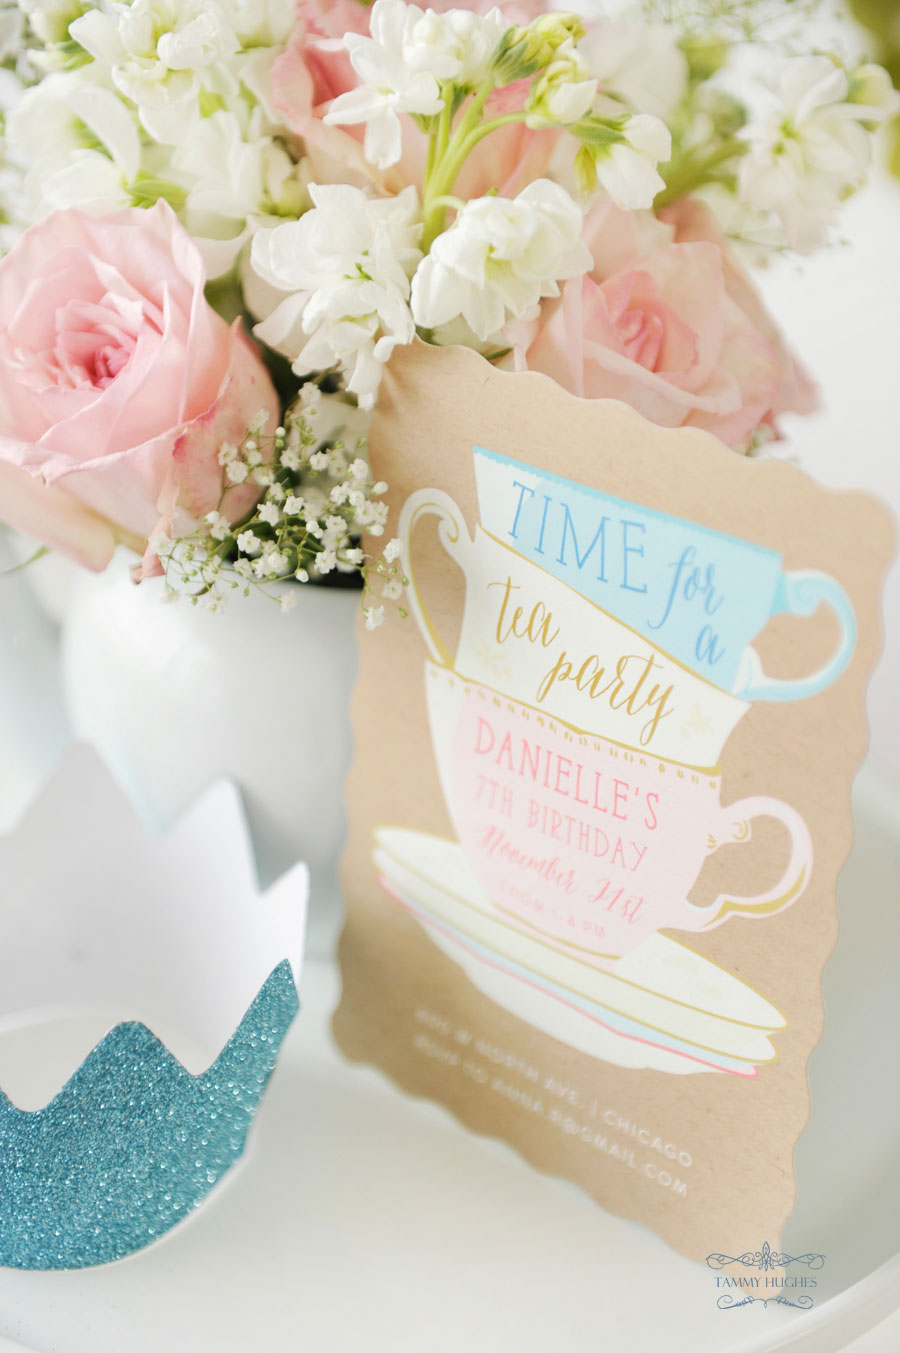 Sneak Peek of a Tea Party for Minted with the Happy Wish Company